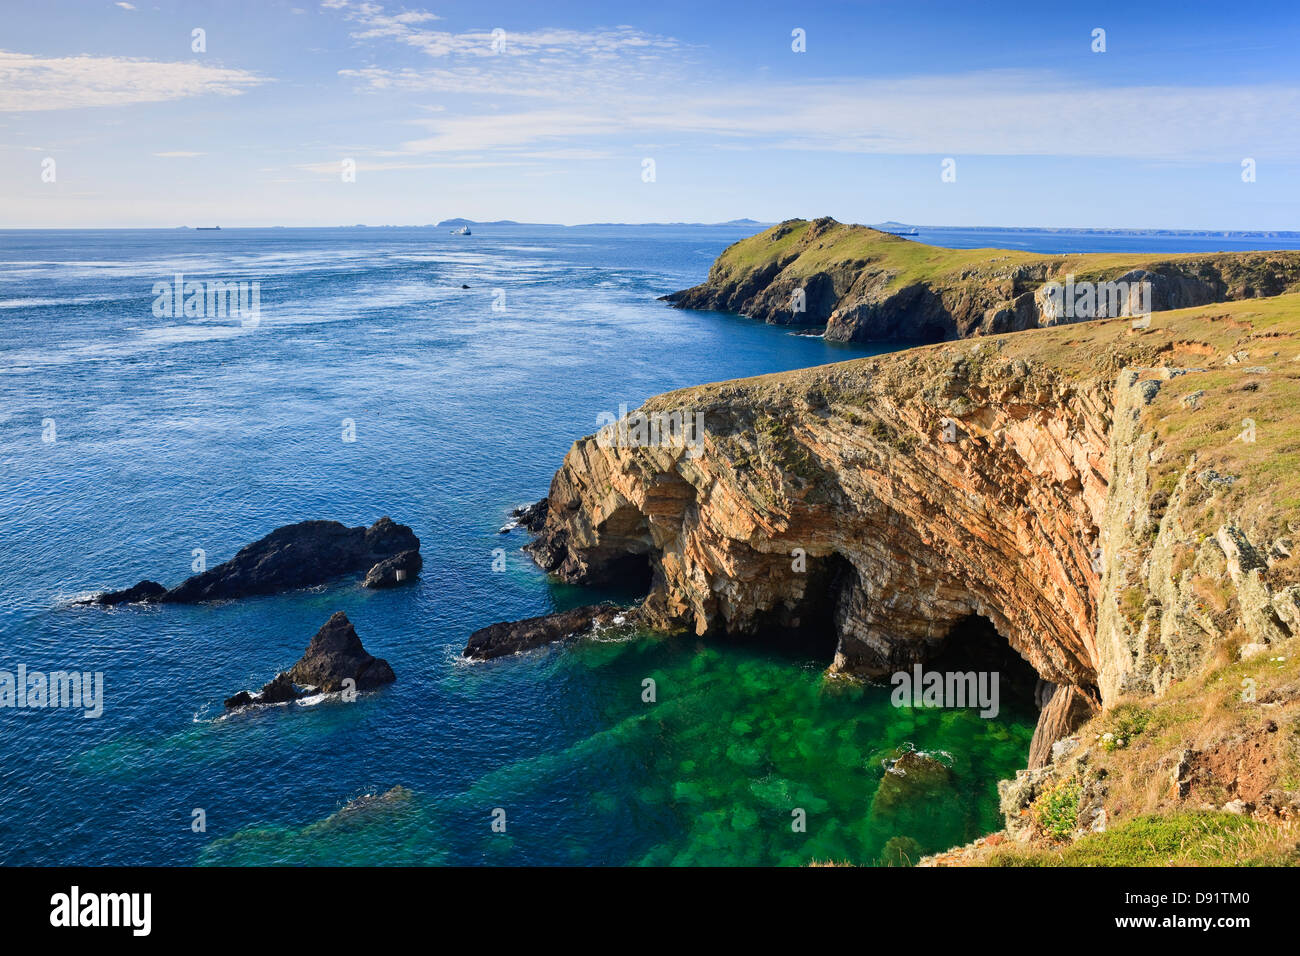 Wooltack Point Martins Haven Pembrokeshire Wales - Stock Image